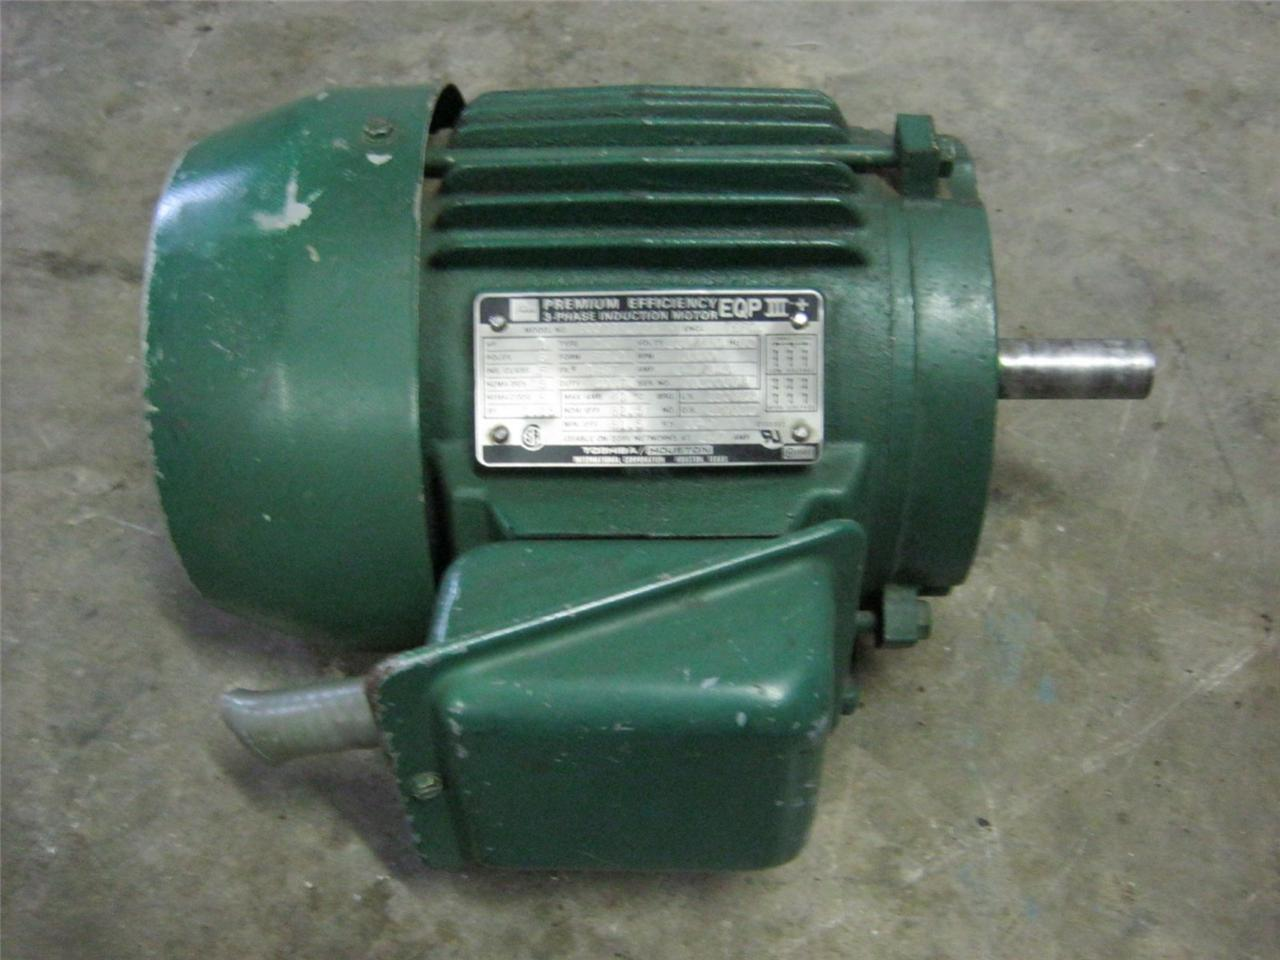 toshiba peremium efficiency 3 phase induction motor eqp3 1